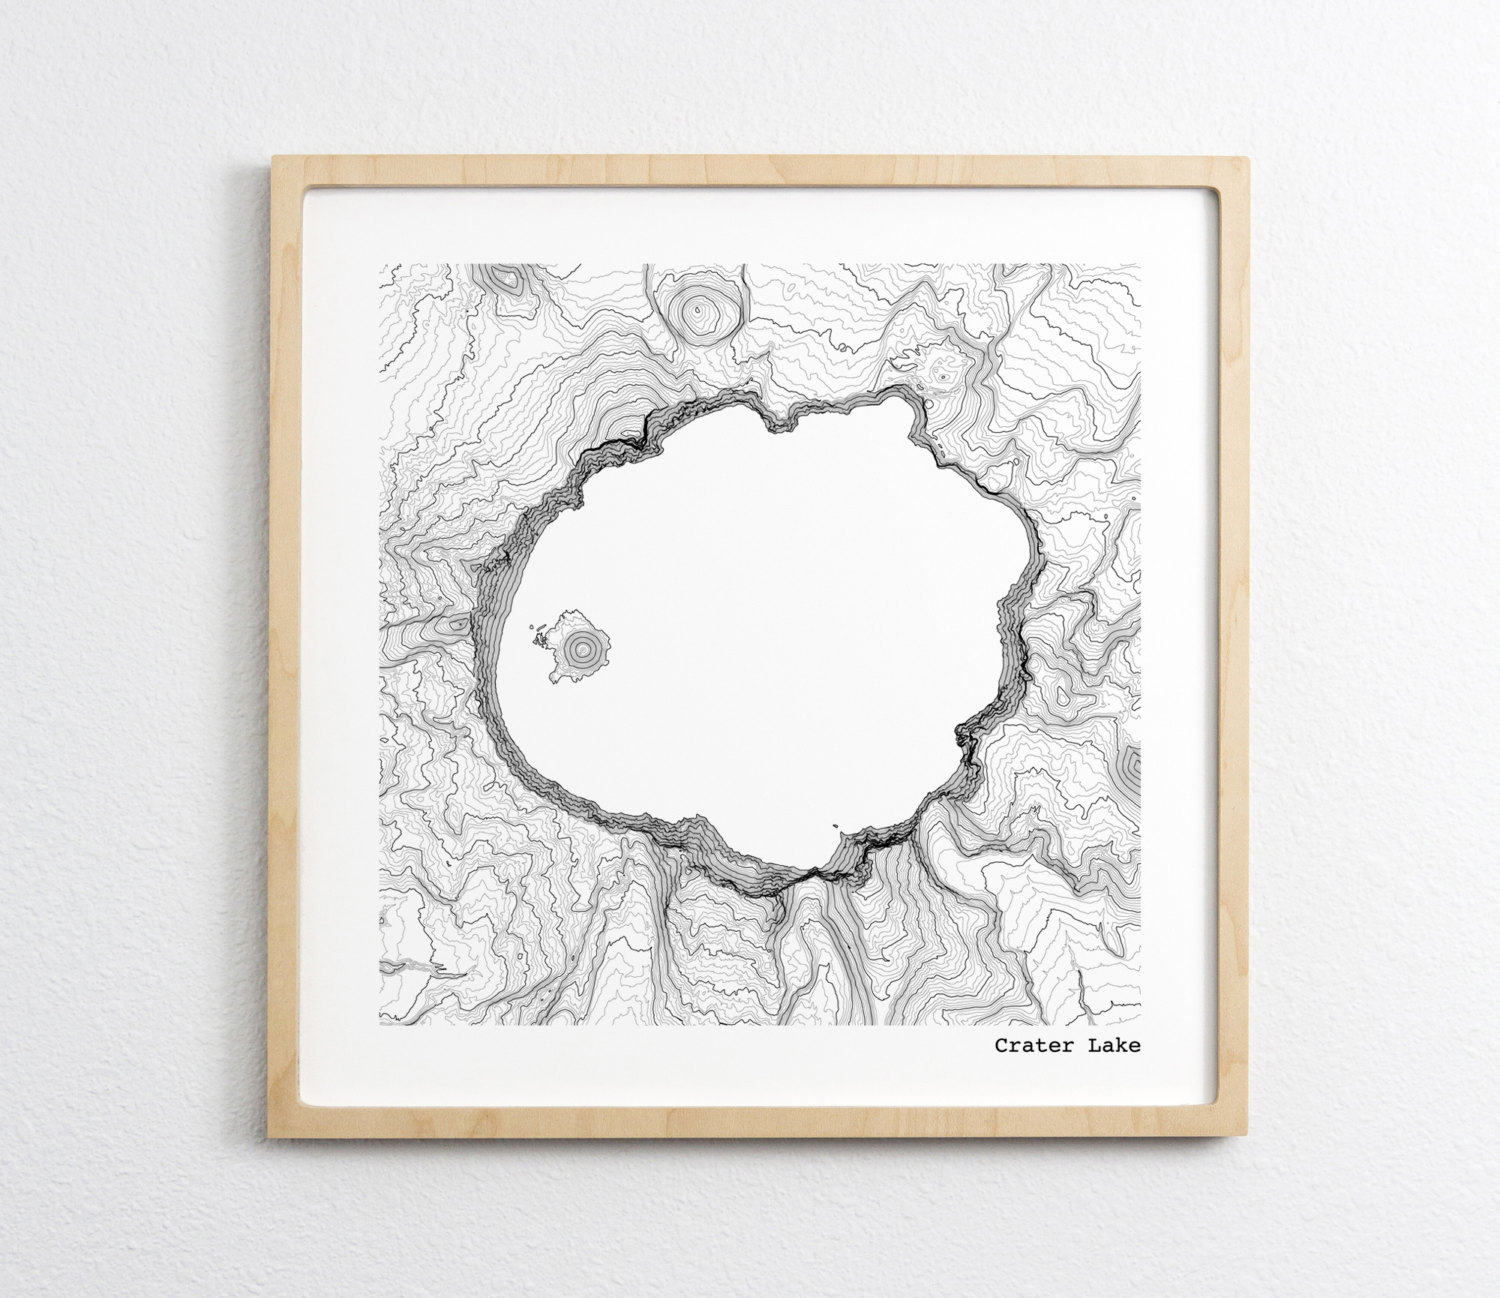 Crater Lake National Park Oregon Topographic Map Art Print Tim